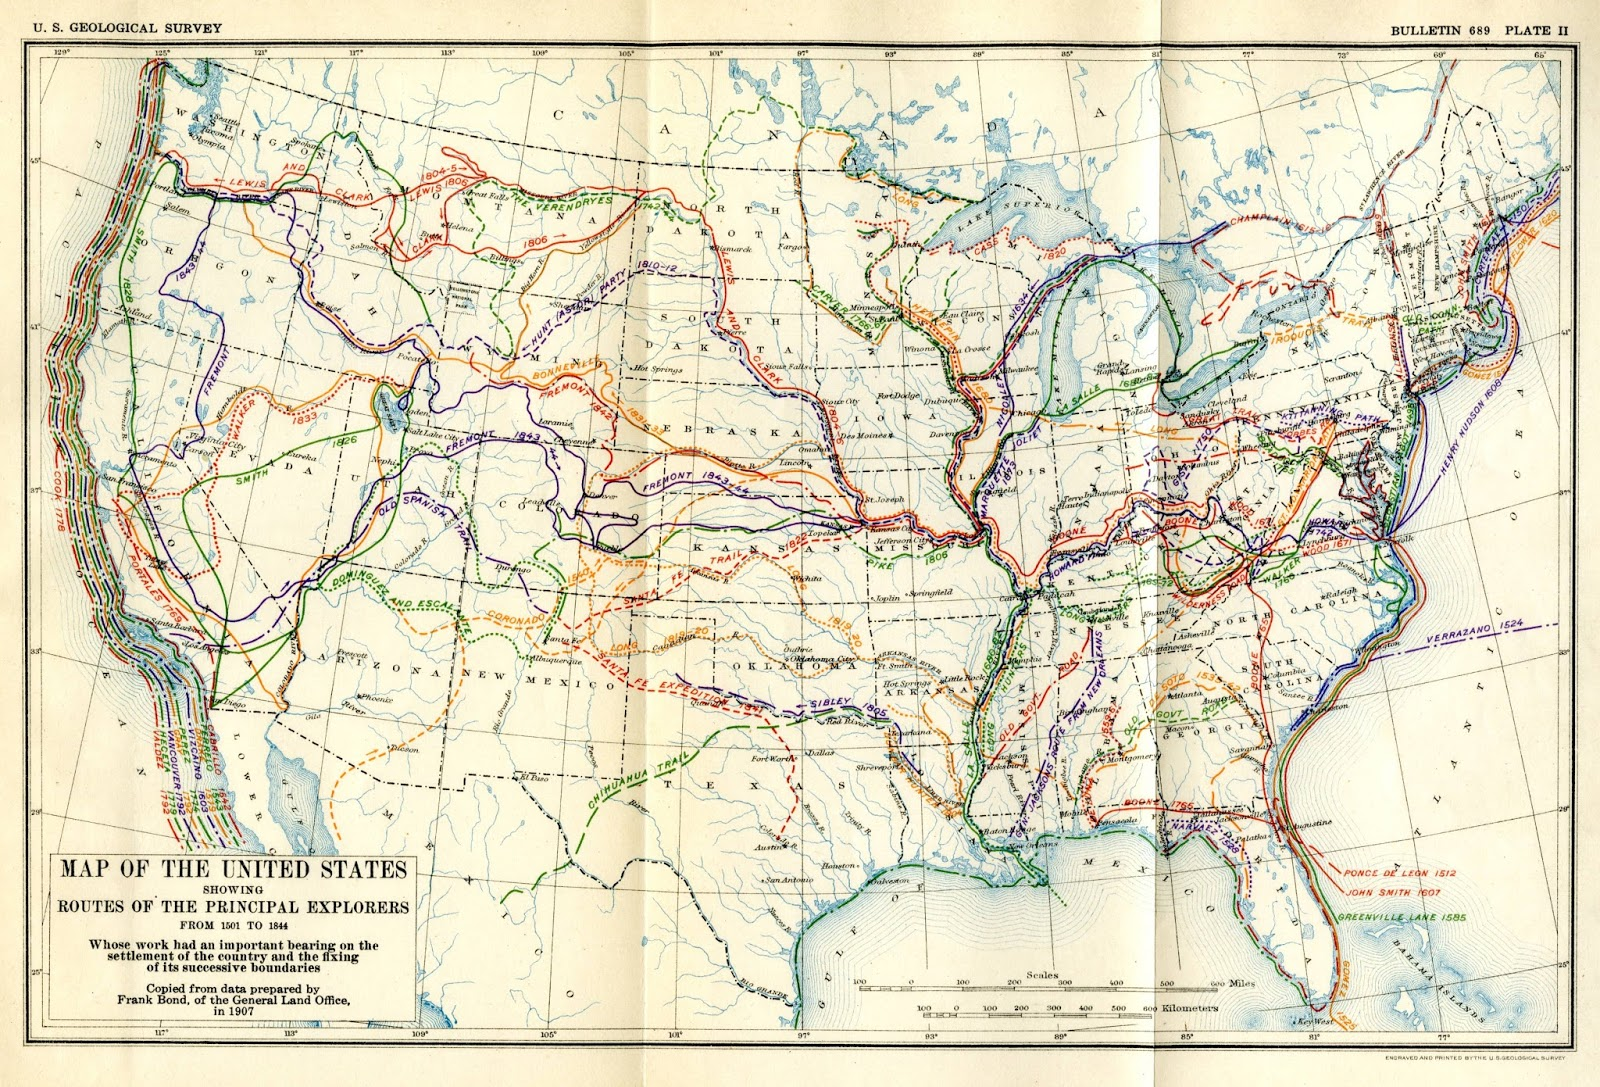 Map of the U.S. showing Routes of Principal Explorers from 1501 to 1844. Engraved and printed by the U.S. Geological Survey, 1907.